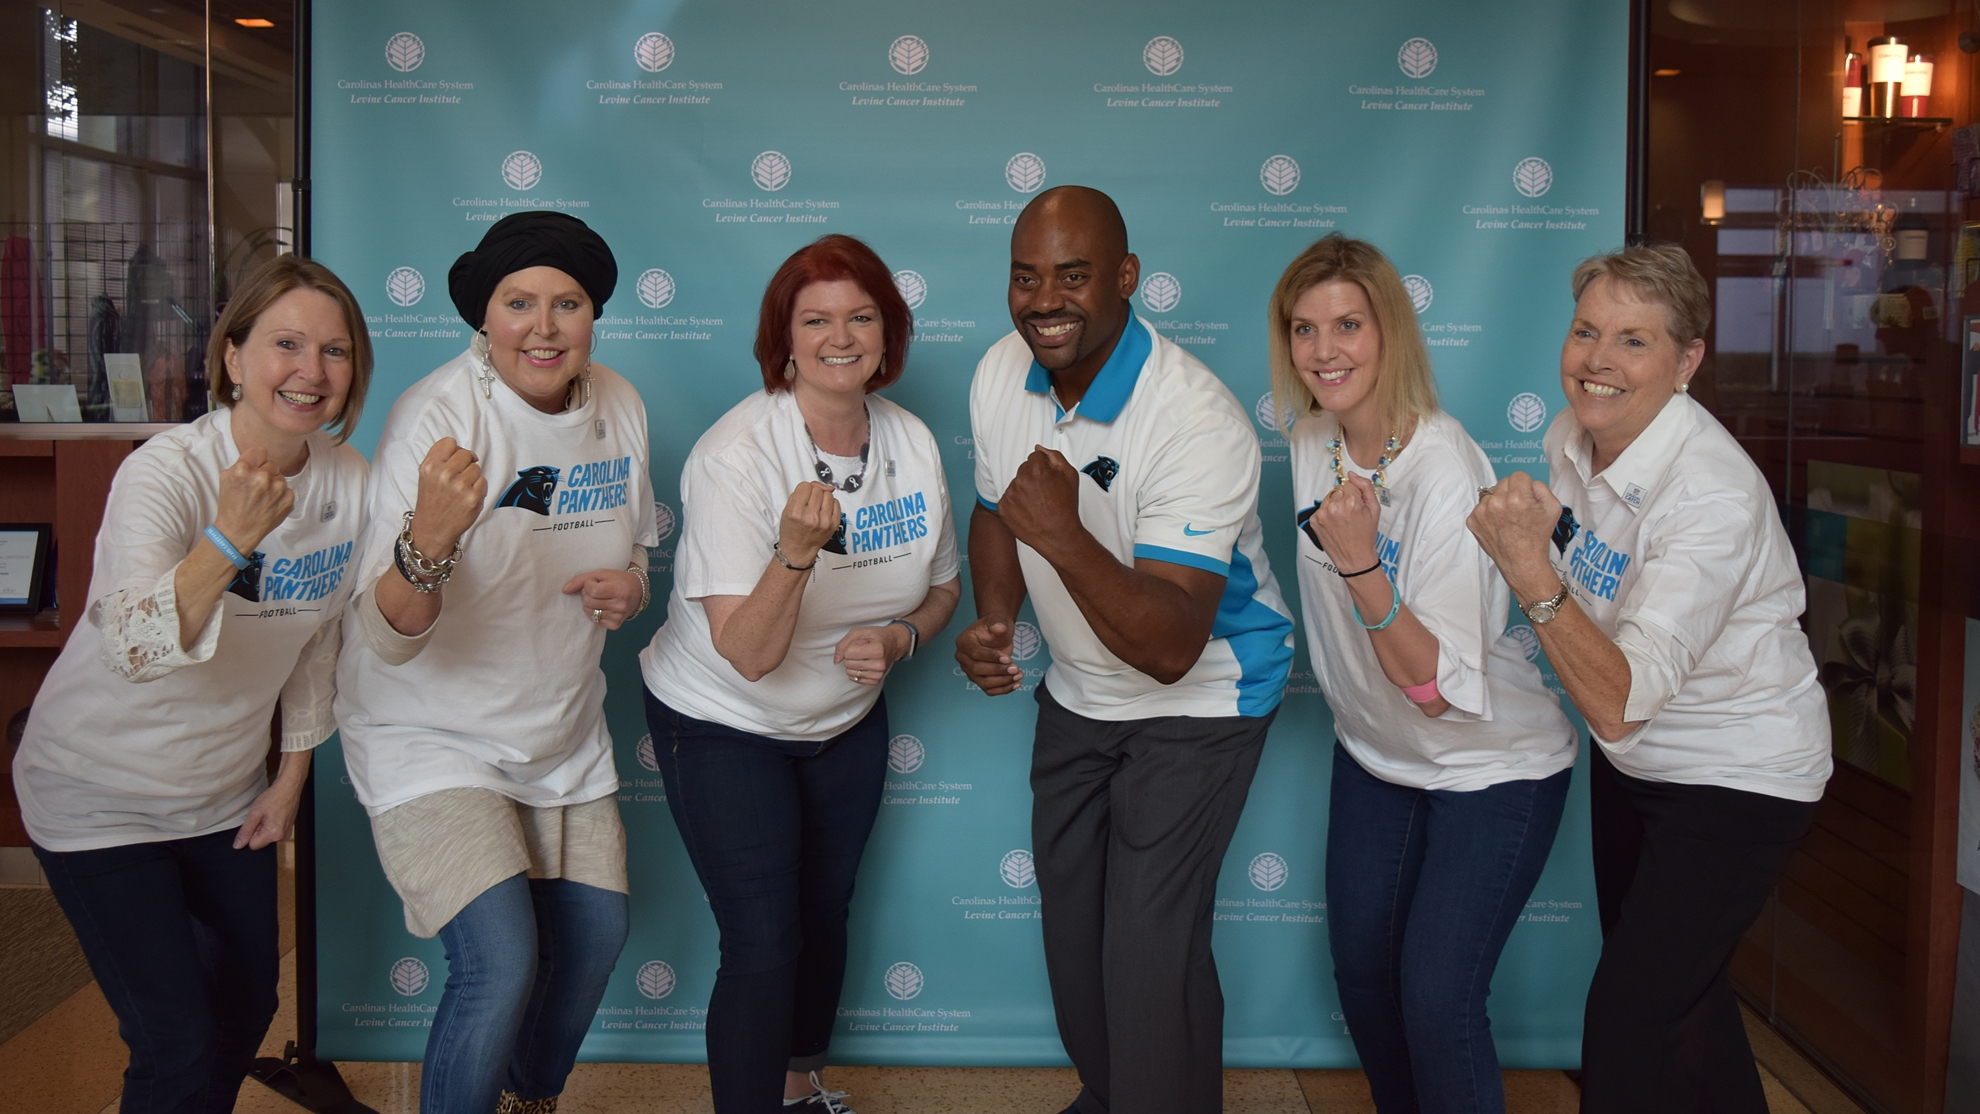 Former Carolina Panthers linebacker Chris Draft (third from right), met with lung cancer survivors at Levine Cancer Institute in Charlotte, N.C., as part of a vow he made to his late wife to support other survivors.